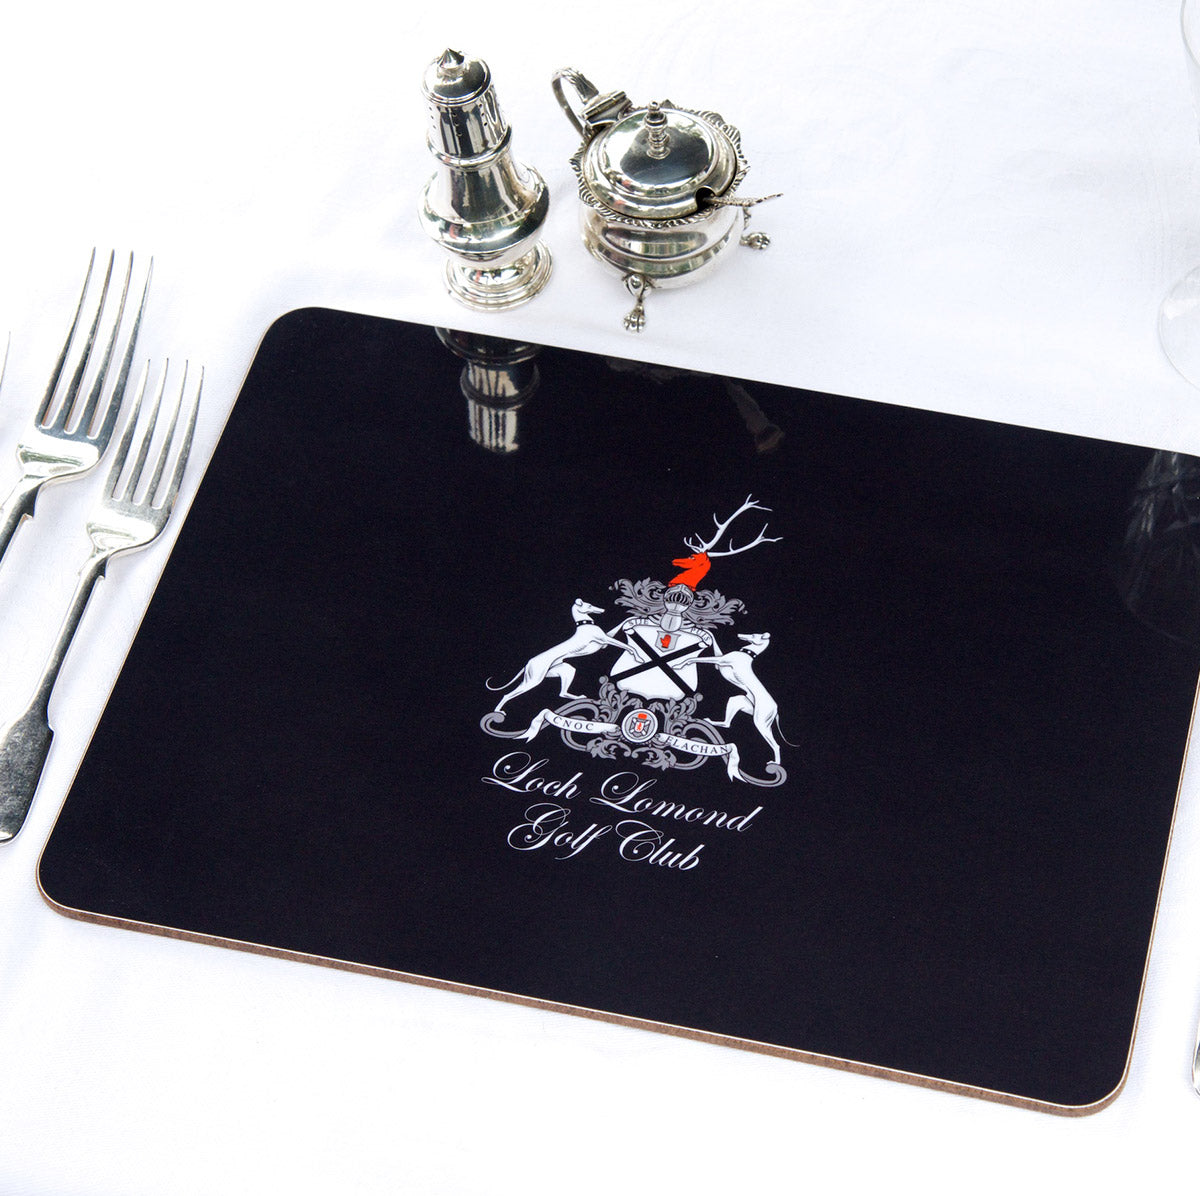 Club Matters - Bespoke Design - Hospitality - Bespoke Table Mats